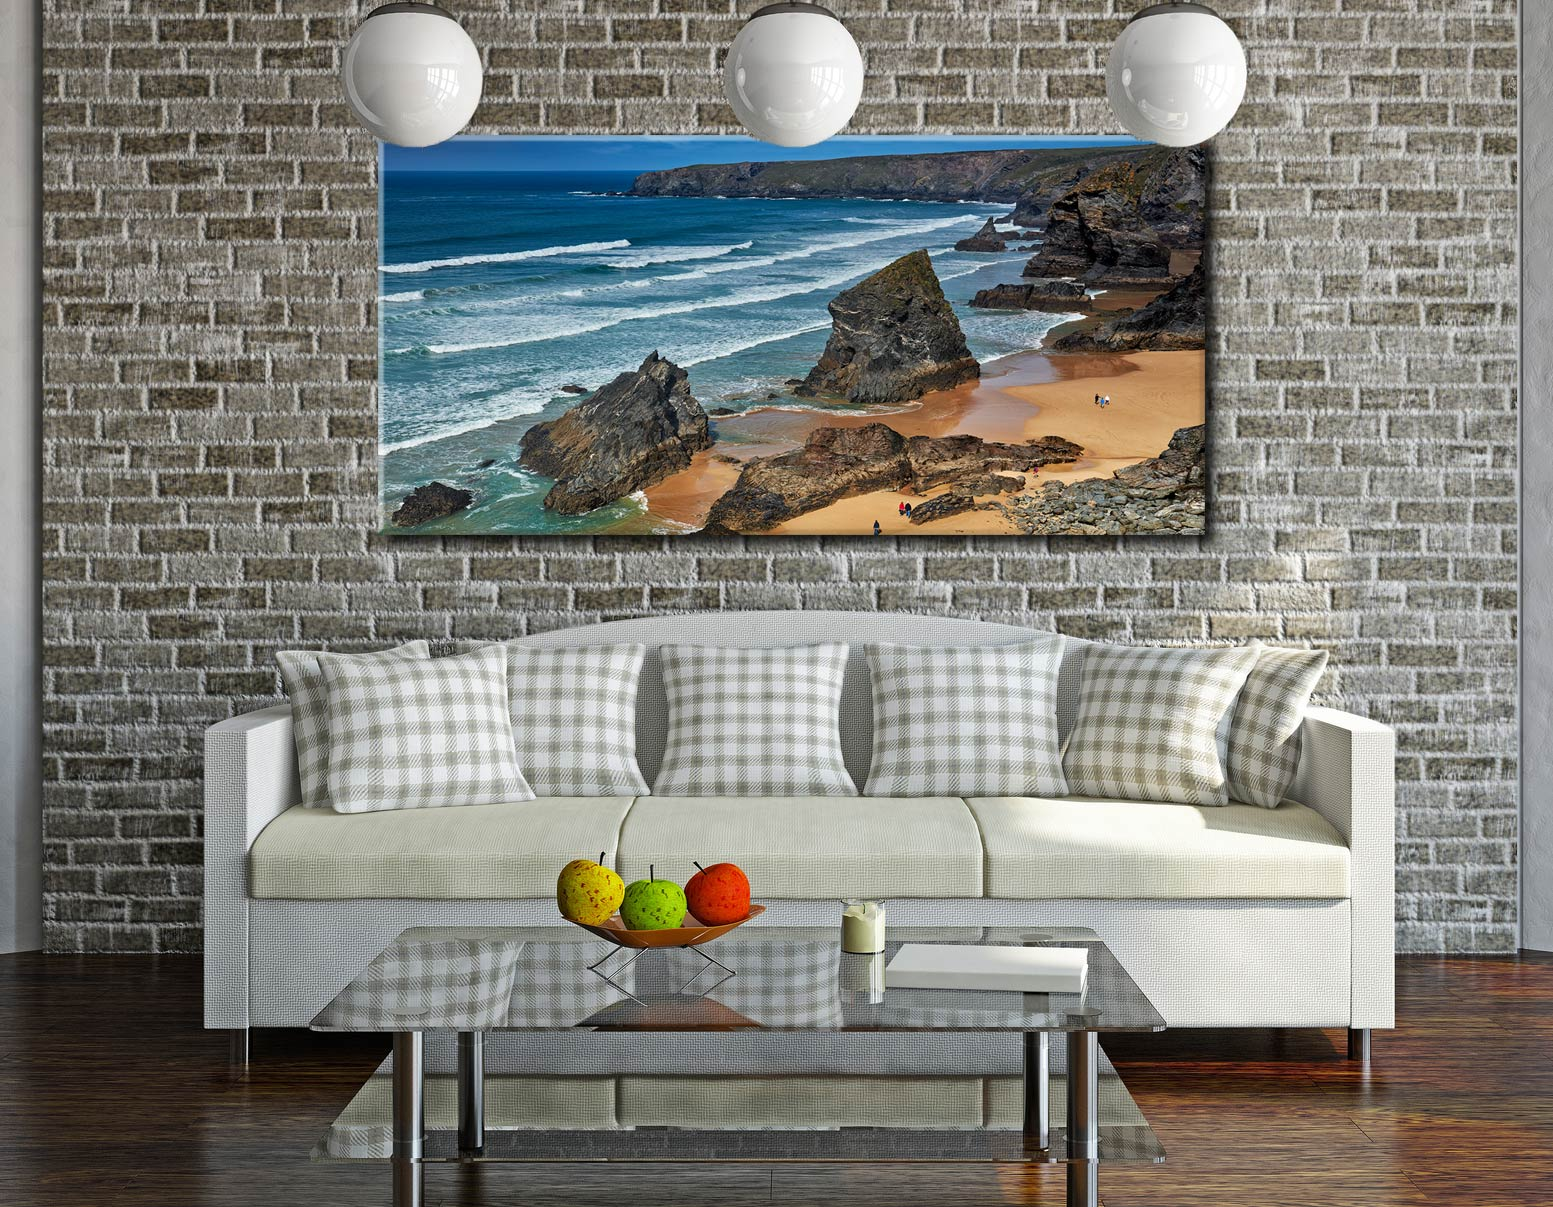 Bedruthan Steps Beach Rocks - Canvas Print on Wall